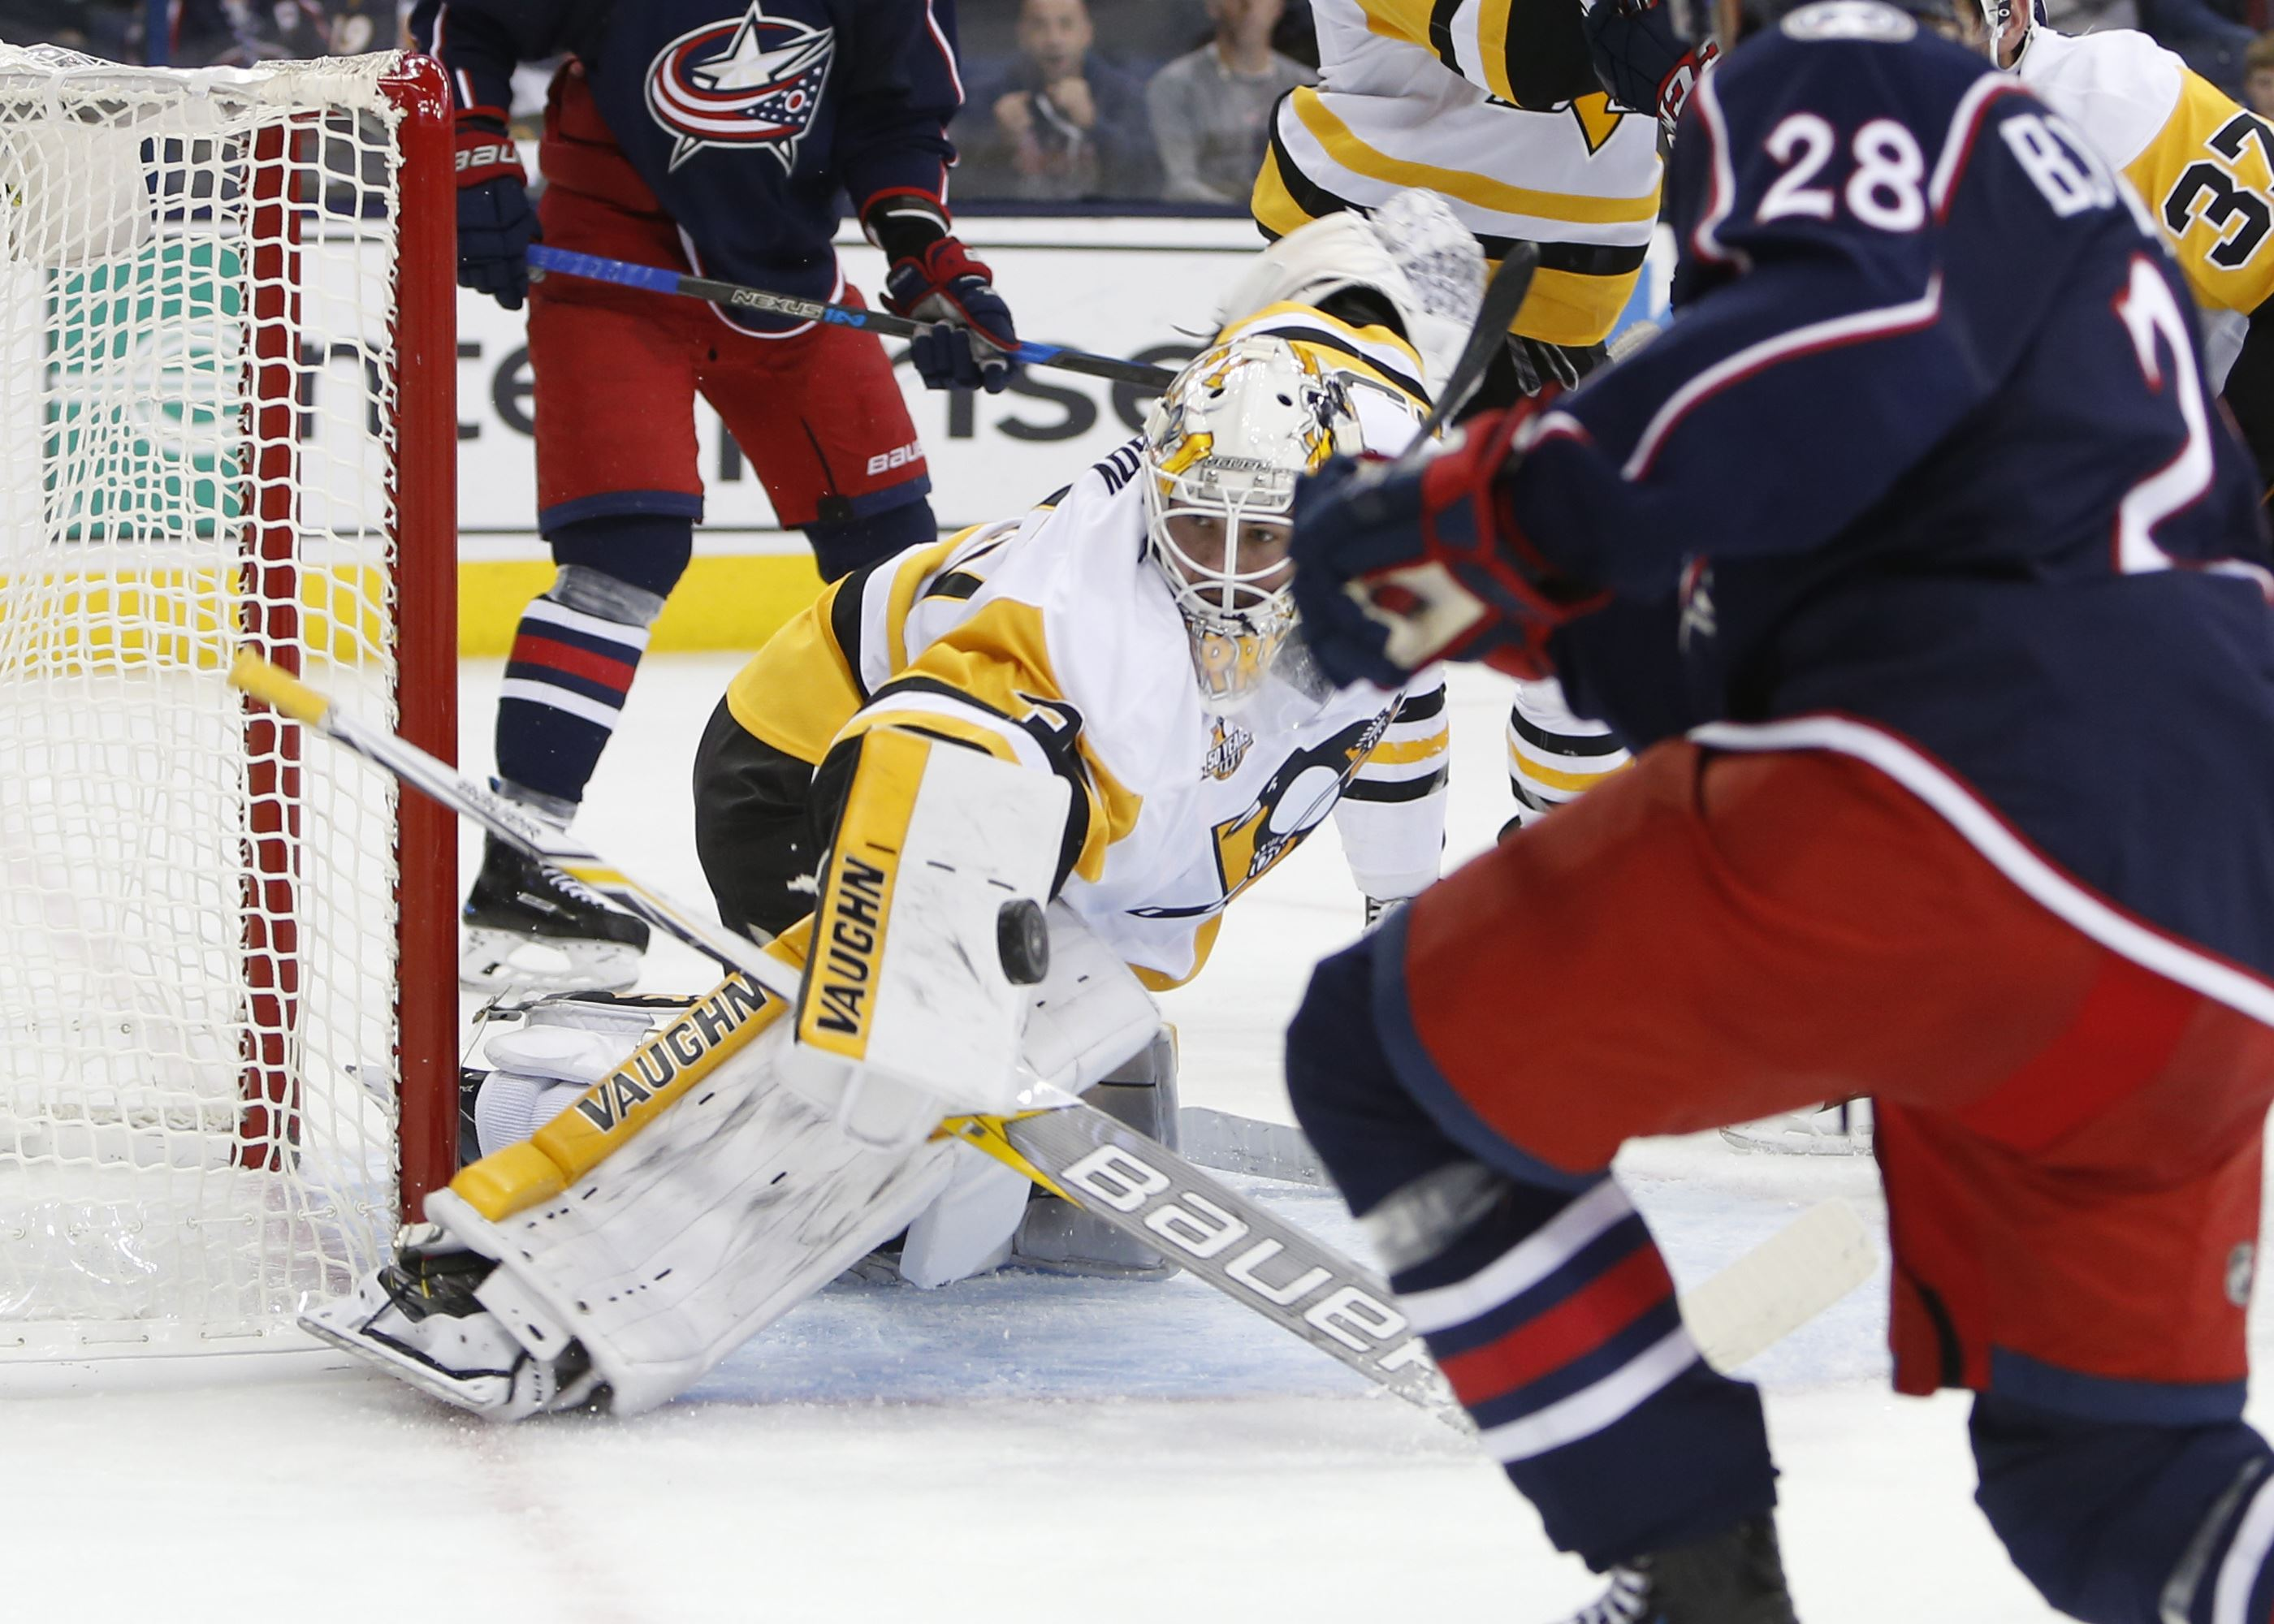 Penguins blank Blue Jackets Jarry continues strong preseason